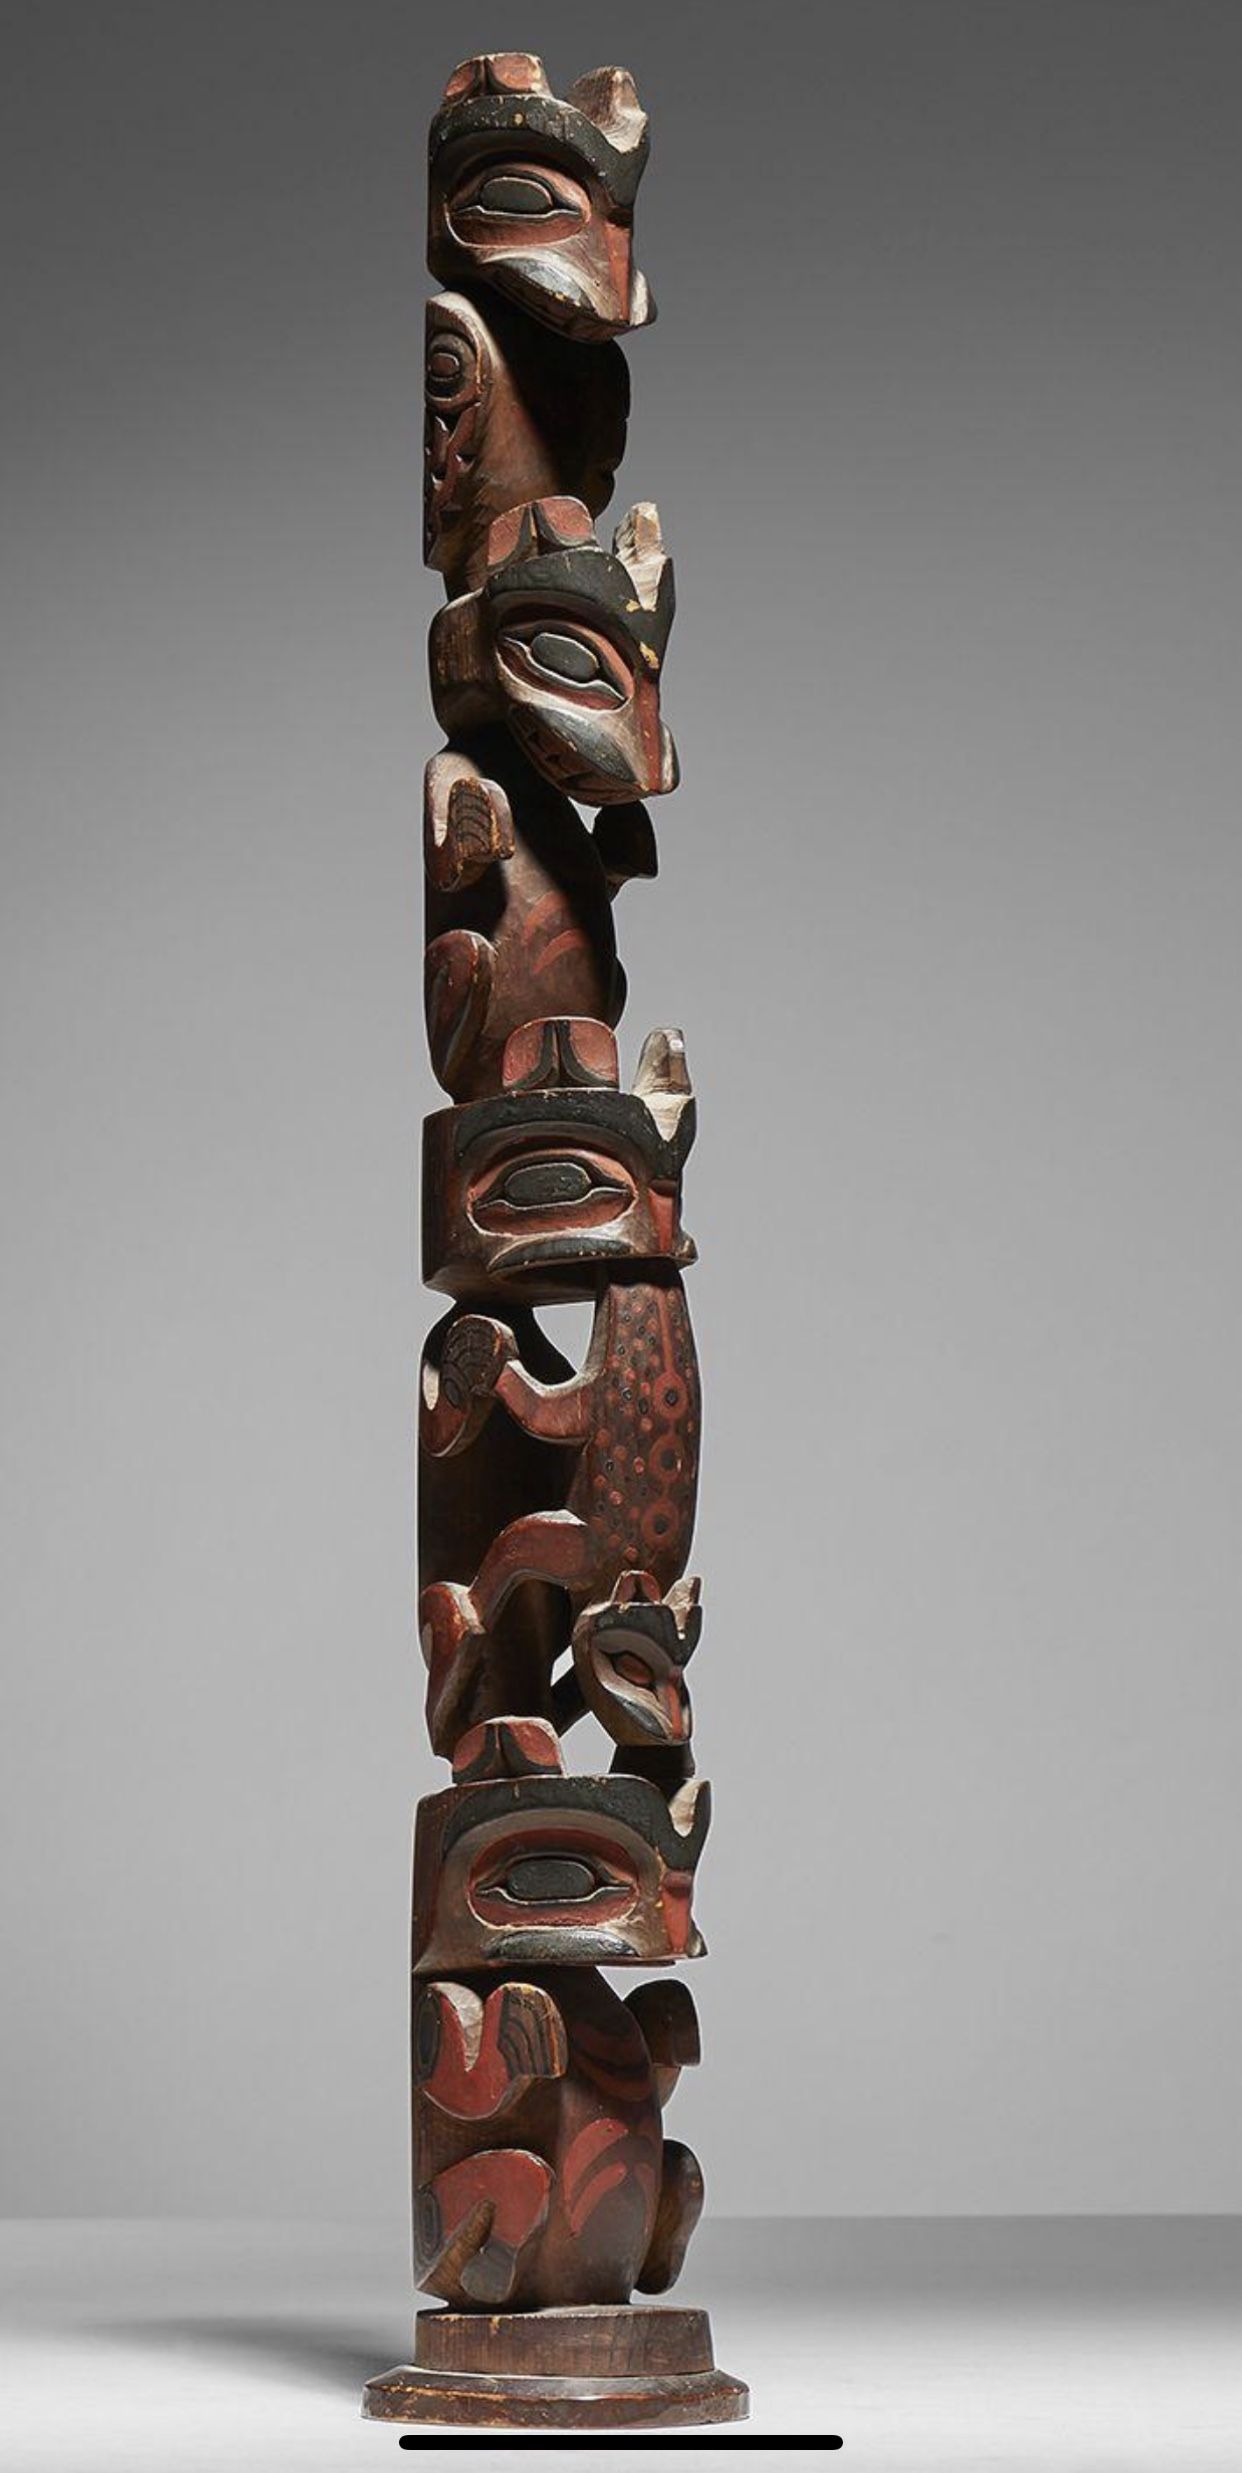 Pin by David Kirkpatrick on Totem Poles Totem pole